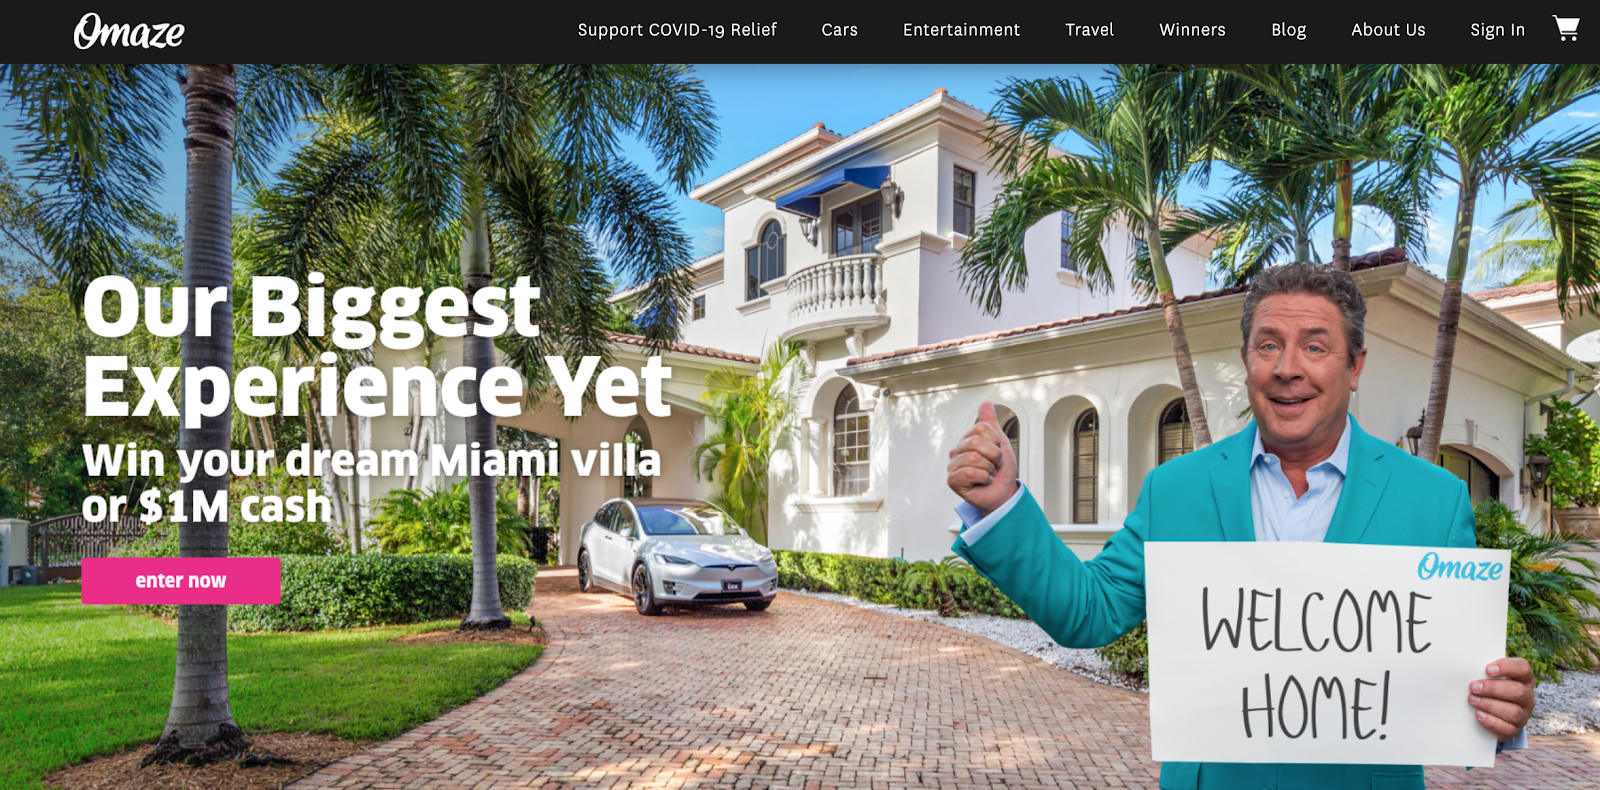 Omaze homepage with a man in front of a mansion